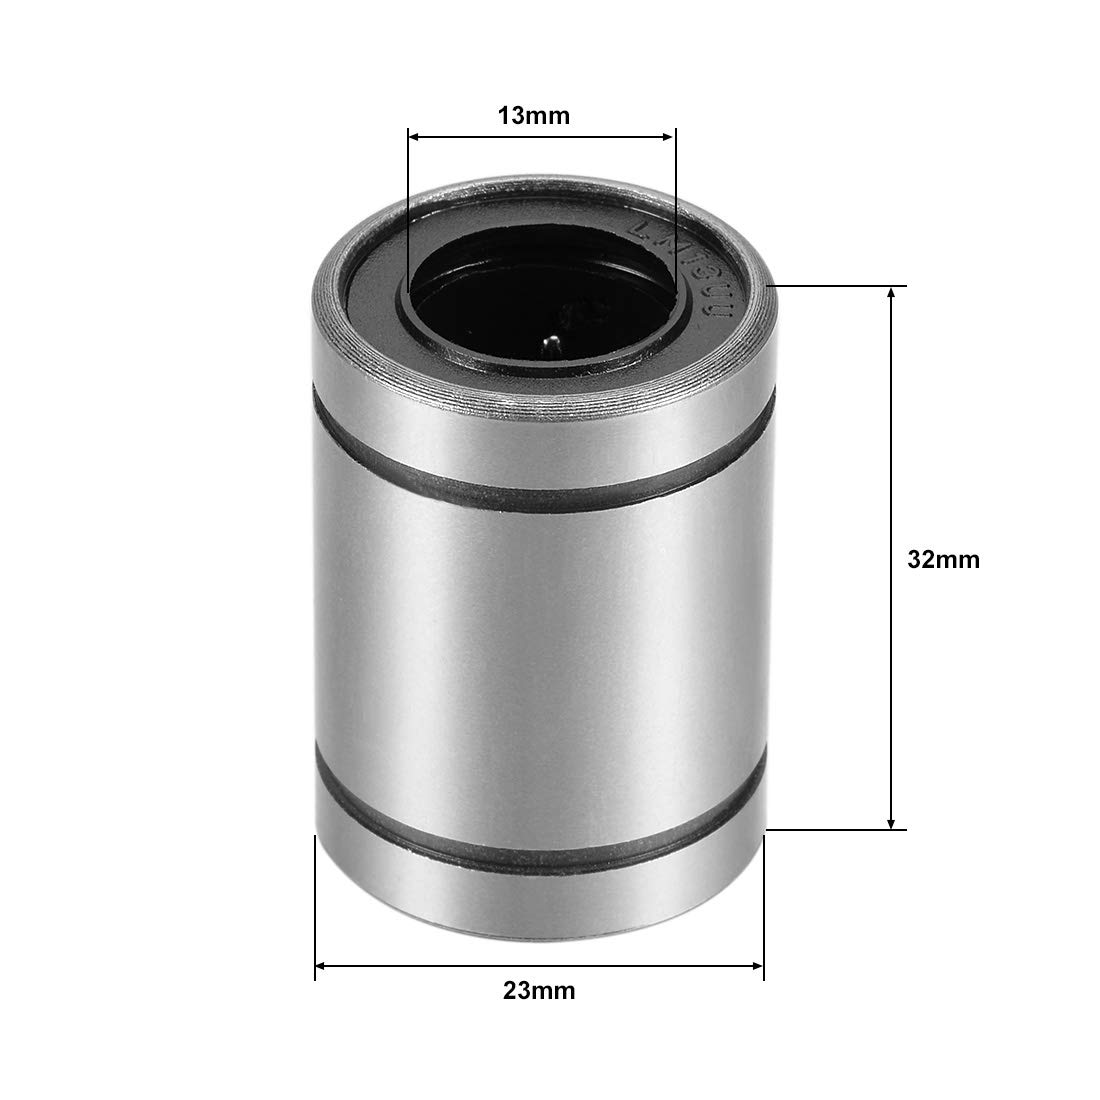 6mm Bore Dia 19mm Length 12mm OD Pack of 2 uxcell/® LM6UU Linear Ball Bearings